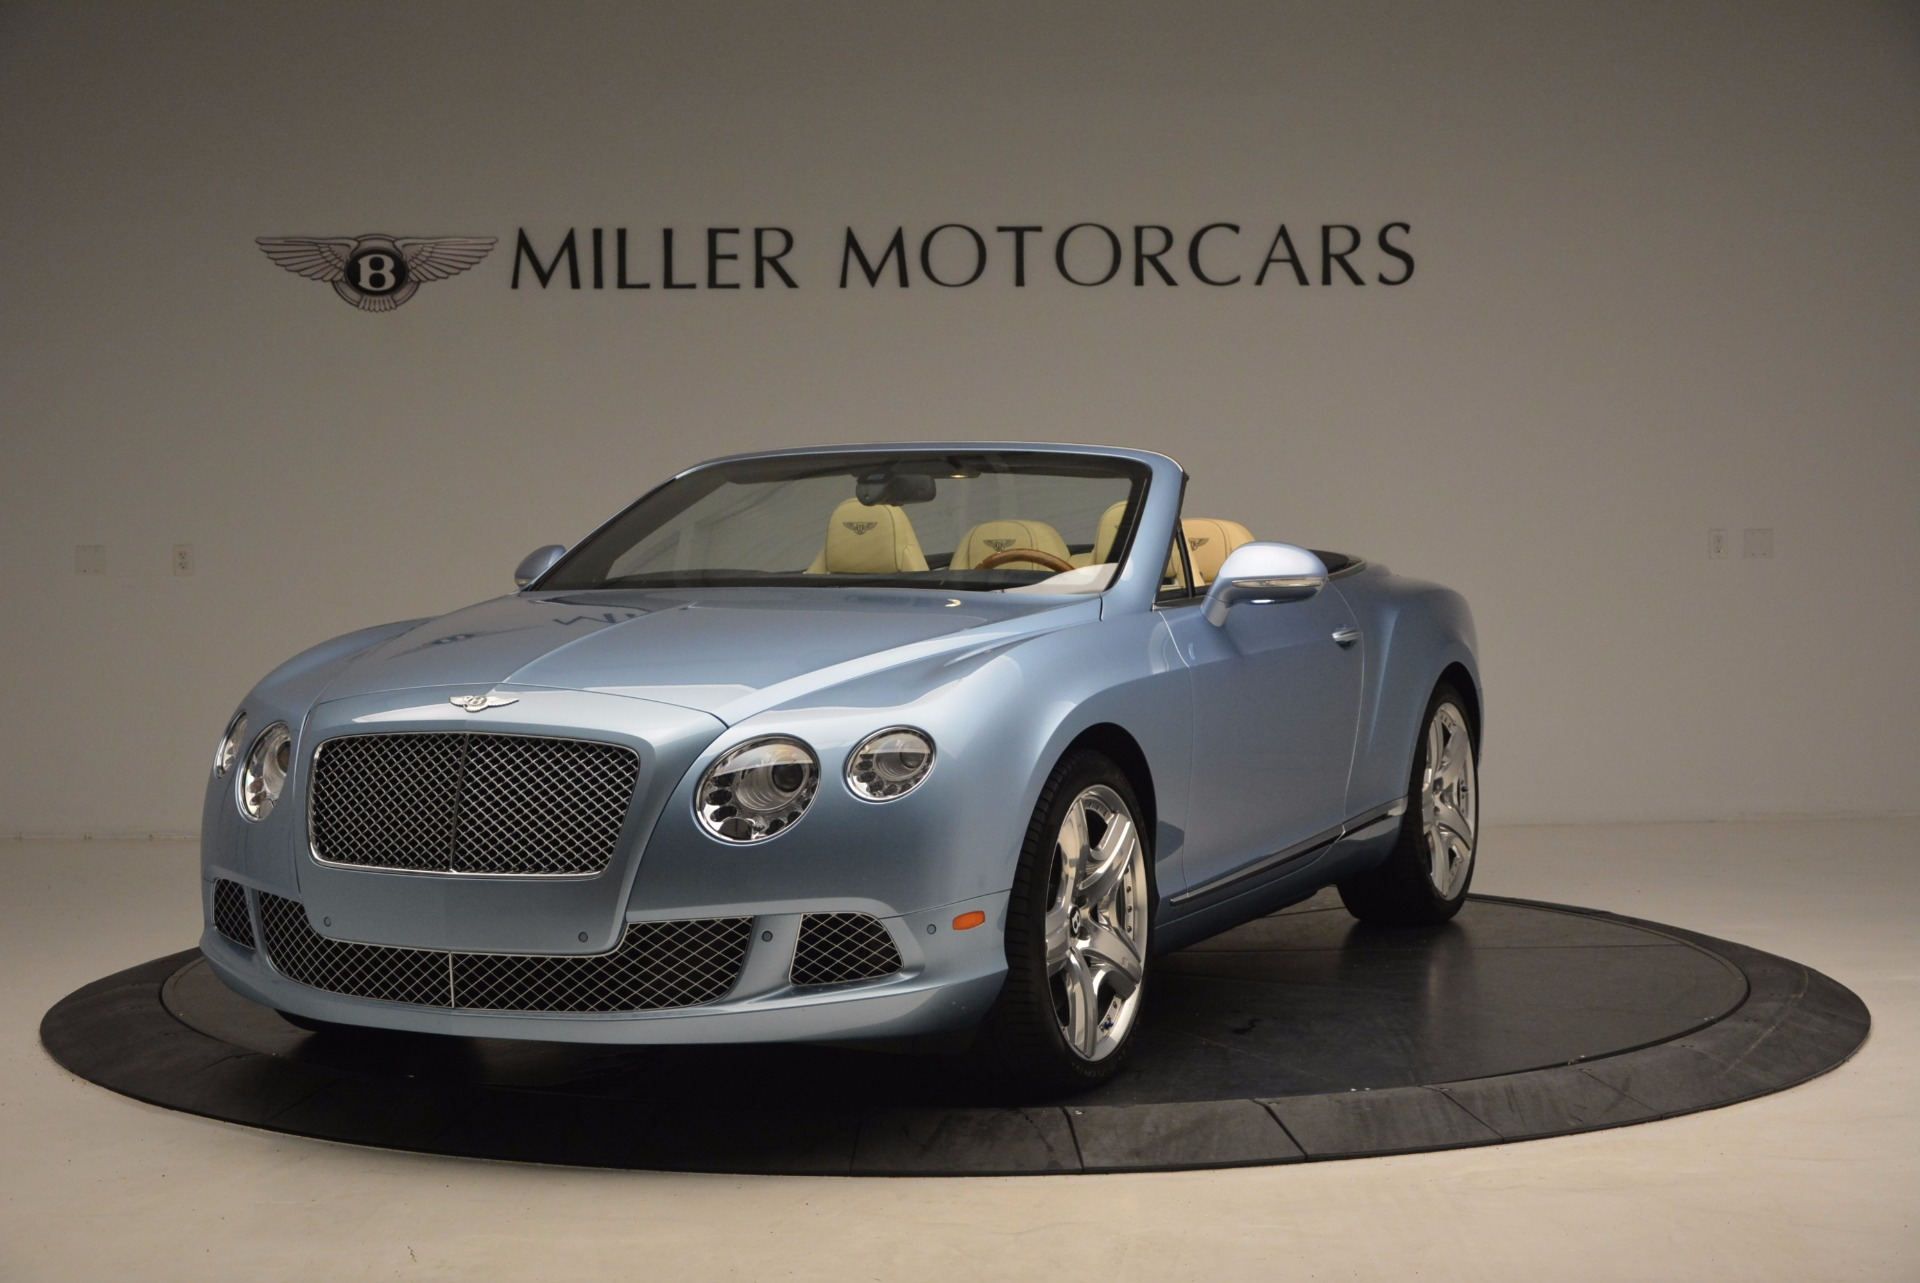 Used 2012 Bentley Continental GTC W12 for sale Sold at Bentley Greenwich in Greenwich CT 06830 1